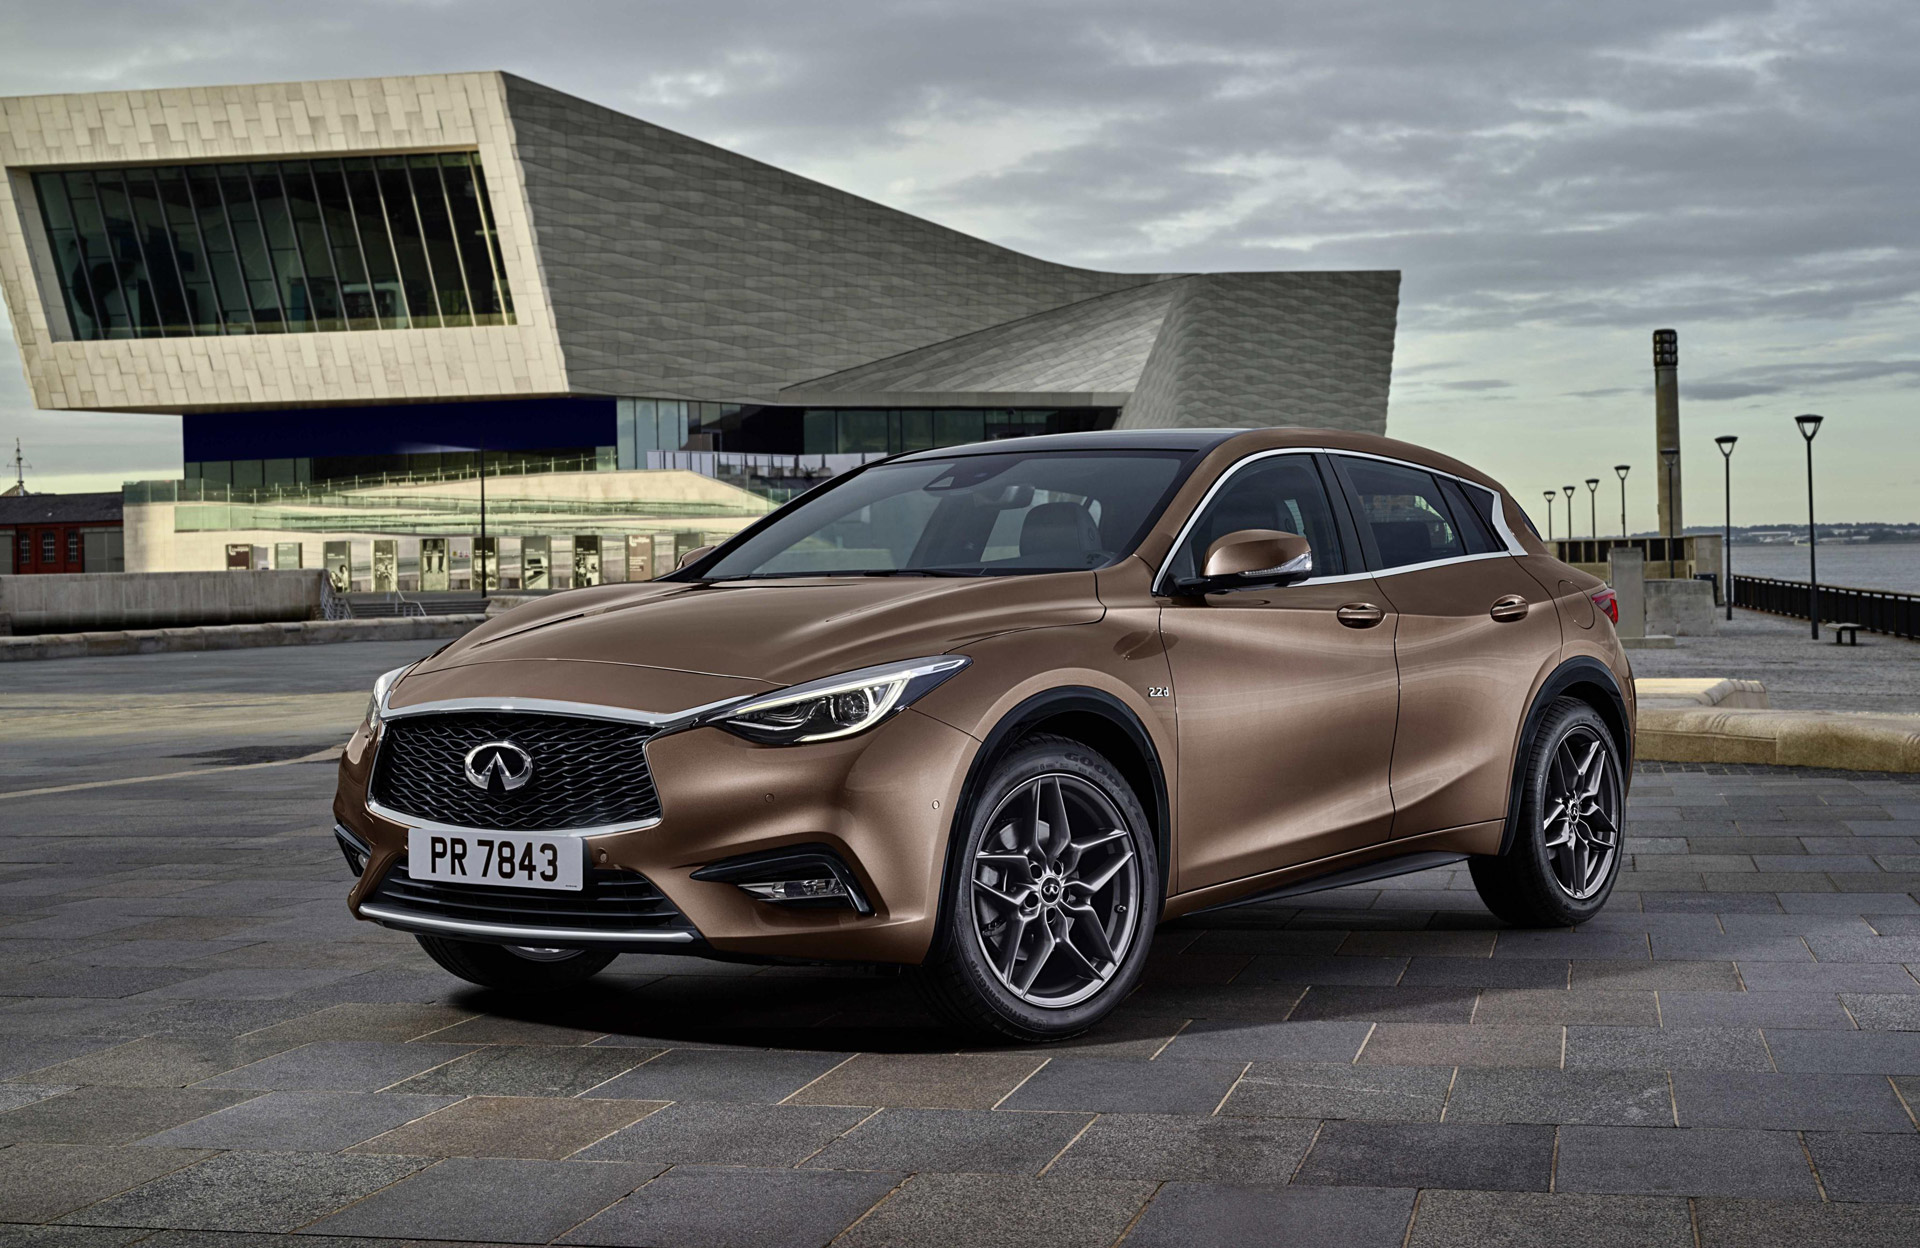 2017 Infiniti Q30 Video And Logic In Compact Hatchback For Frankfurt Show Updated